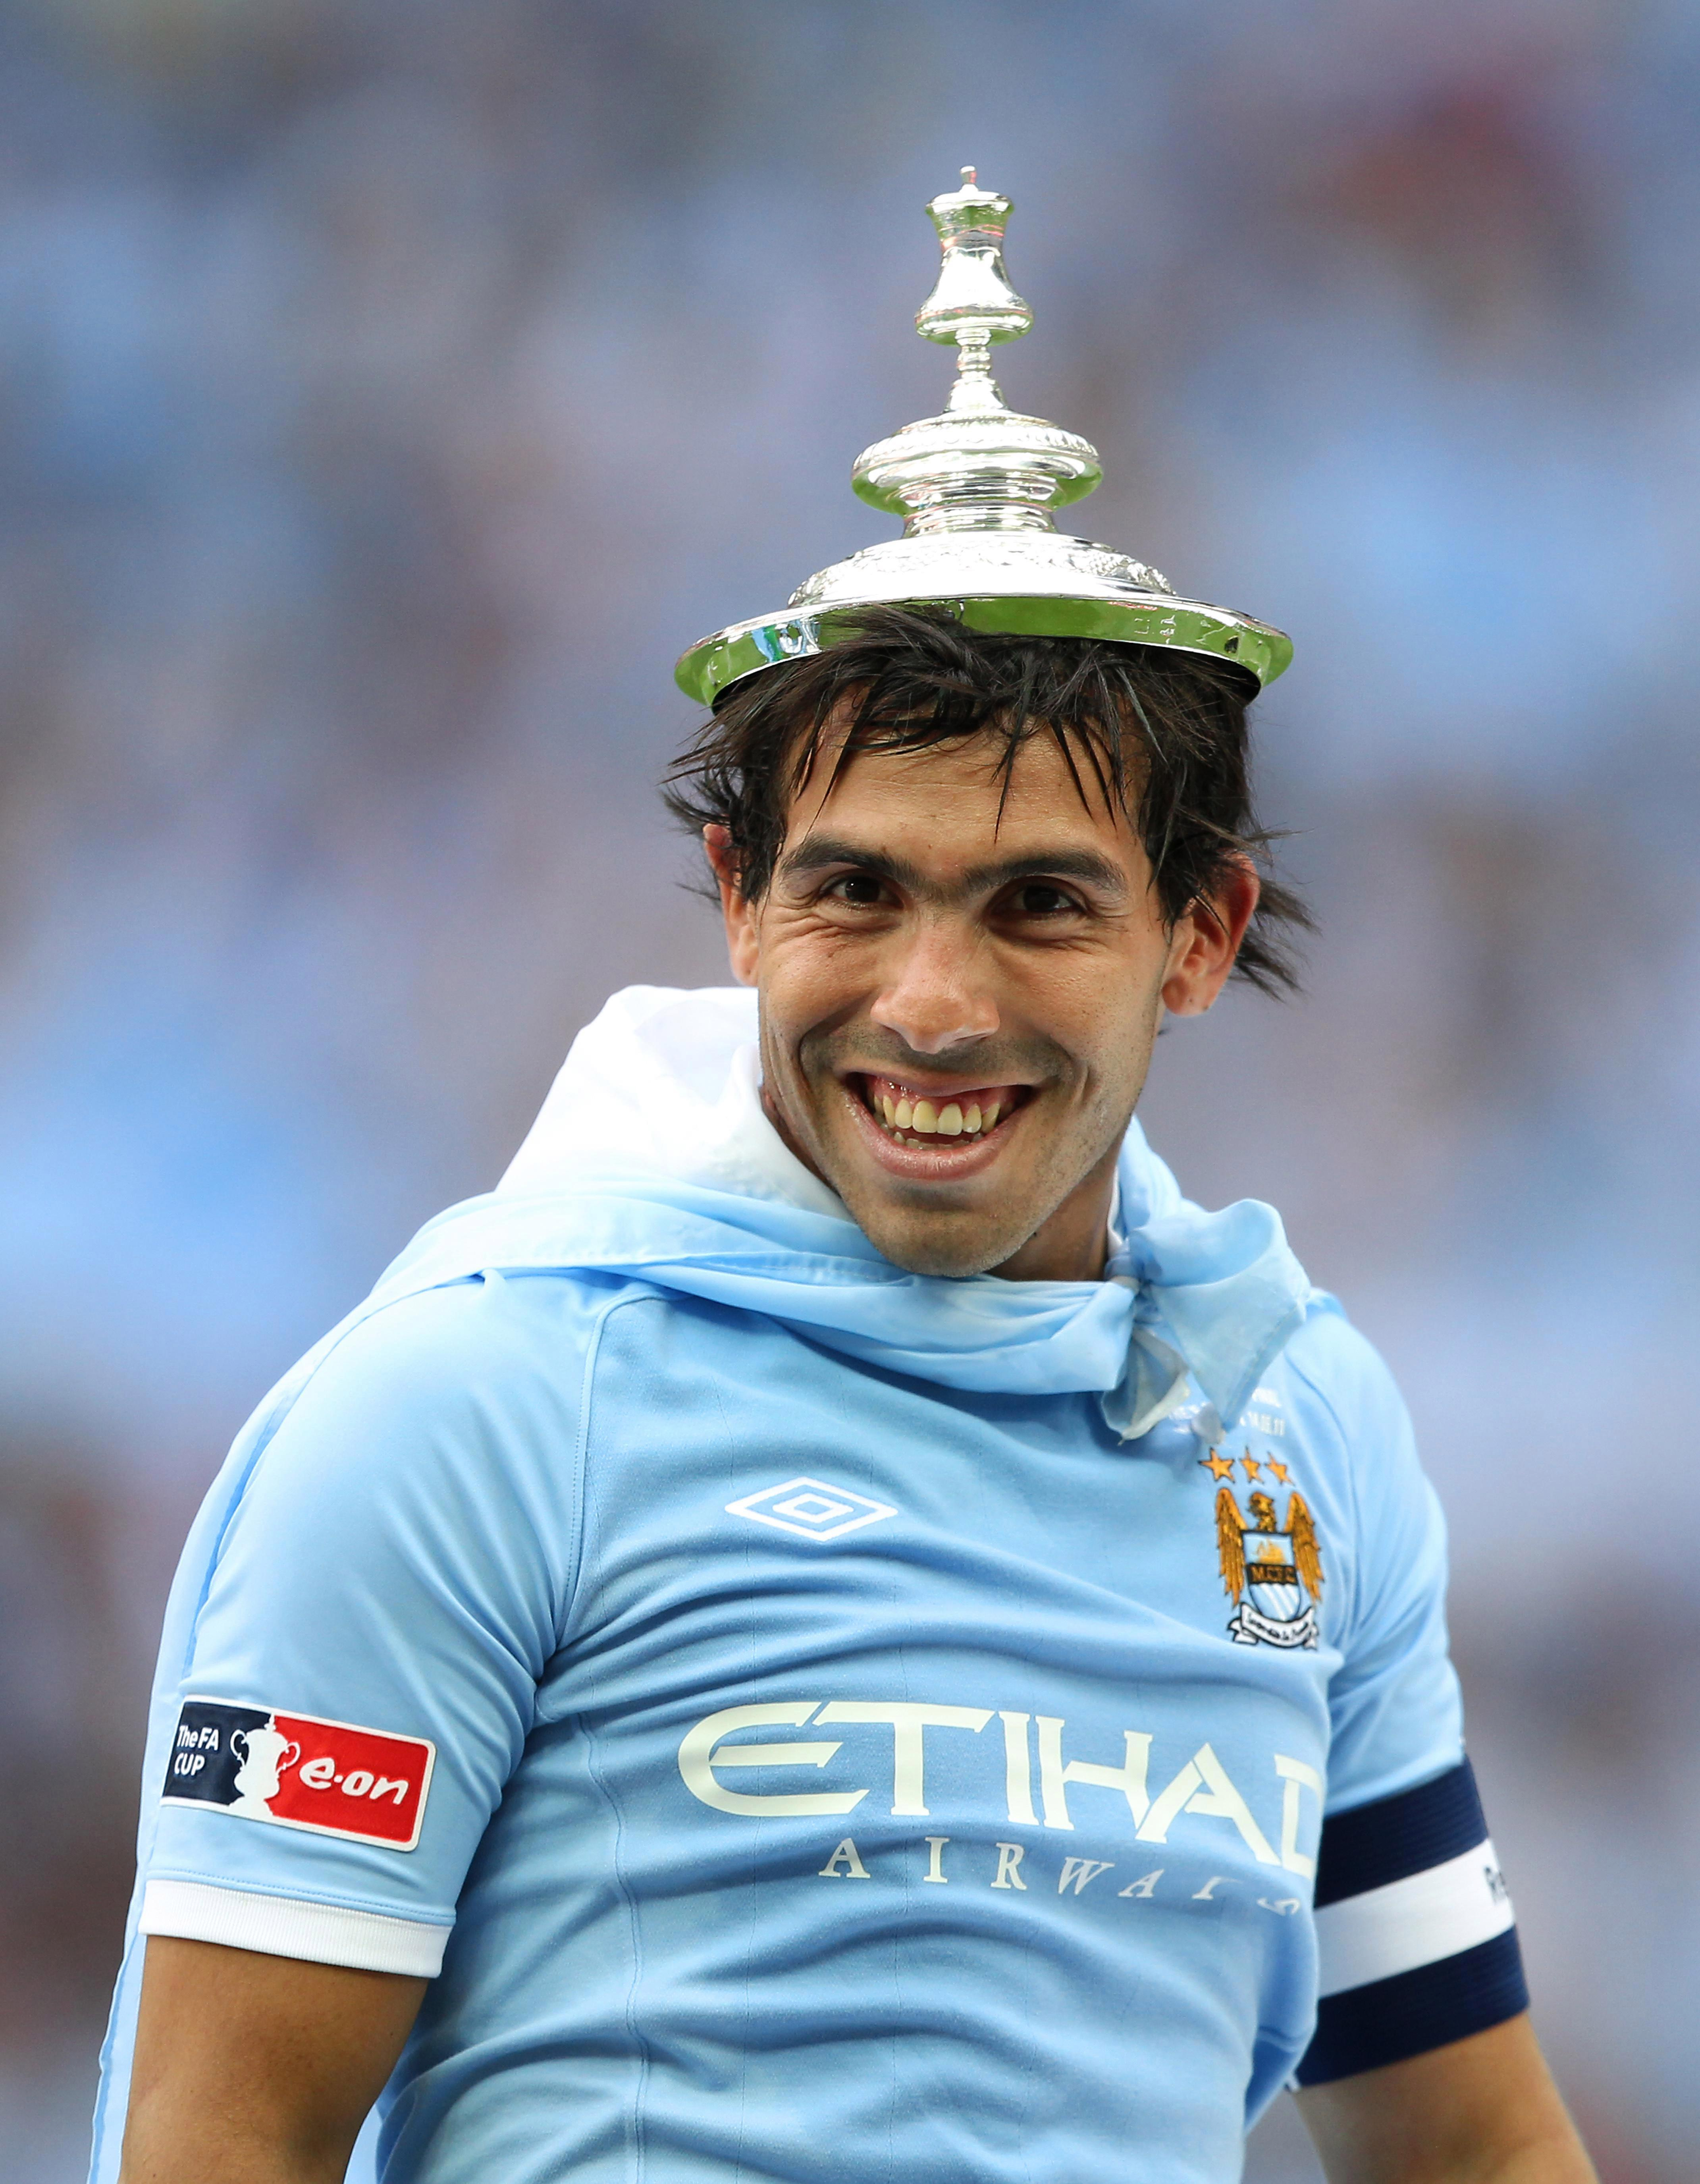 Tevez has played for many big clubs including Manchester City